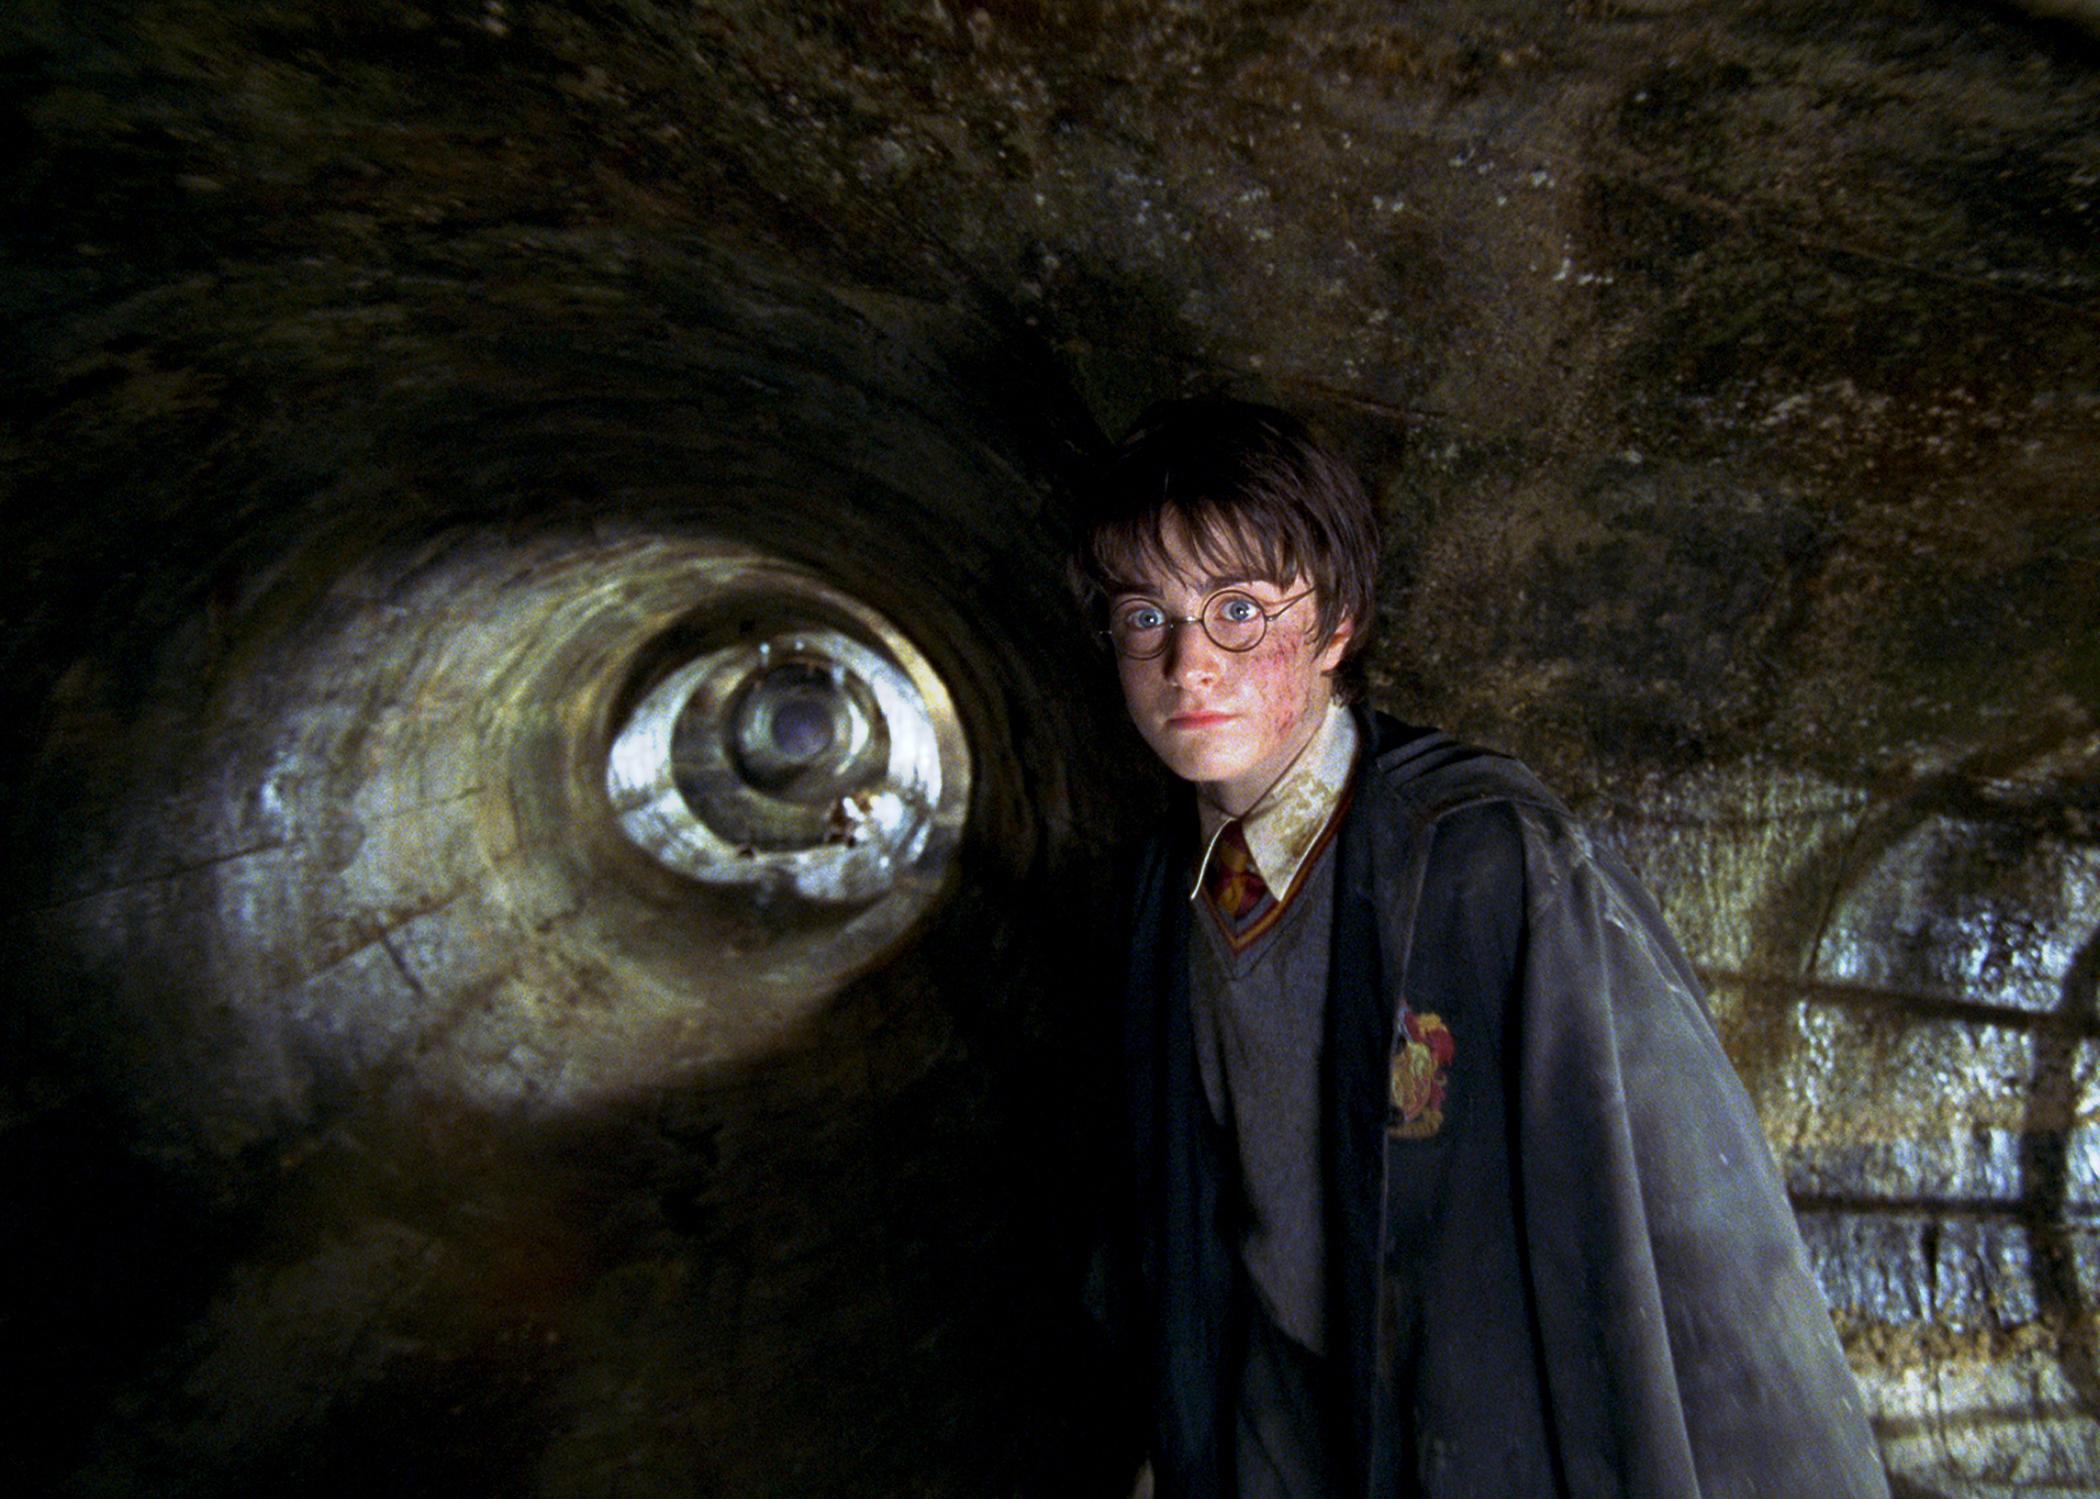 harry potter and the chamber of secrets Harry potter and the goblet of fire (2005) 2005 harry potter and the prisoner of azkaban (2004) 2004 harry potter and the order of the phoenix (2007) 2007 return to oz (1985) 1985 comments on harry potter and the chamber of secrets (2002) you can watch harry potter and the chamber of secrets (2002) online free on movie2kto page by streaming.